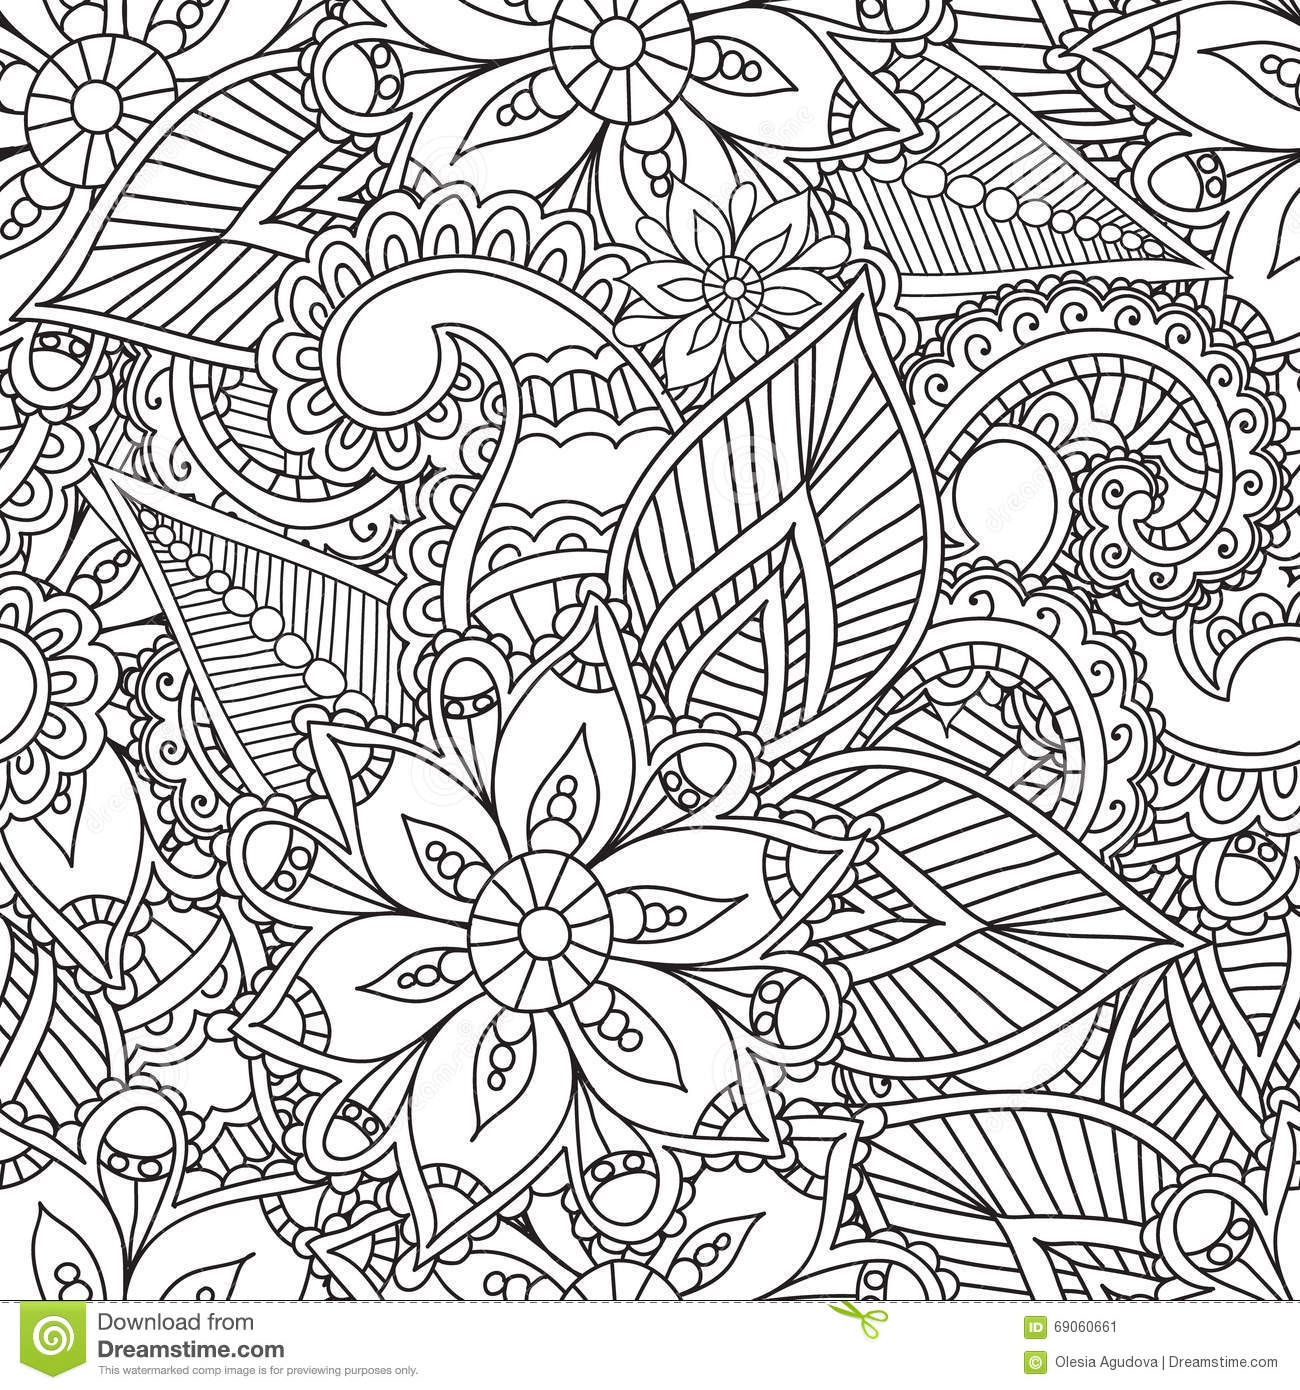 Calming Coloring Pages For Students